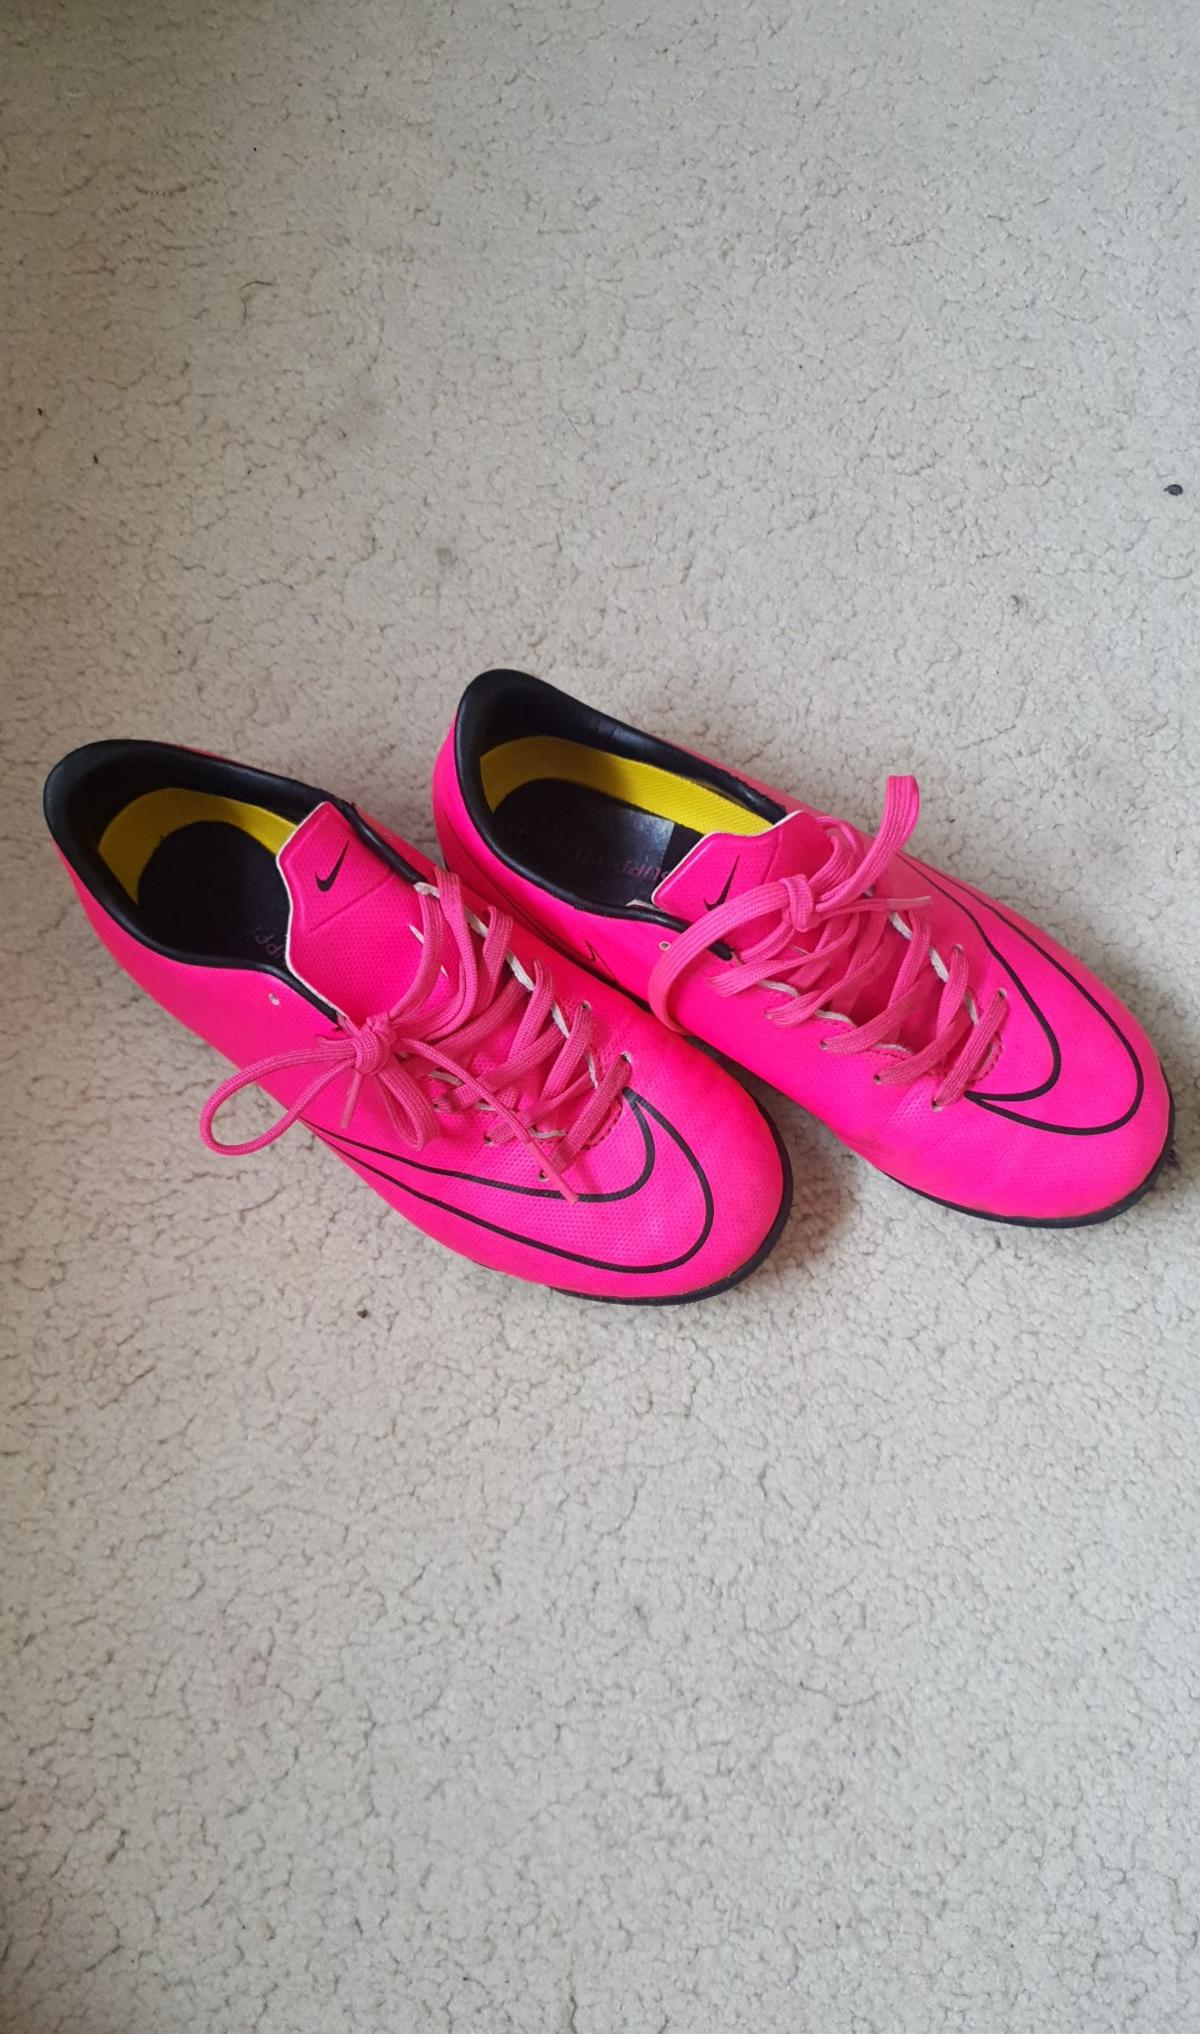 f3adda7379e409 Nike Football boots (astros) in SM6 Sutton for £10.00 for sale - Shpock